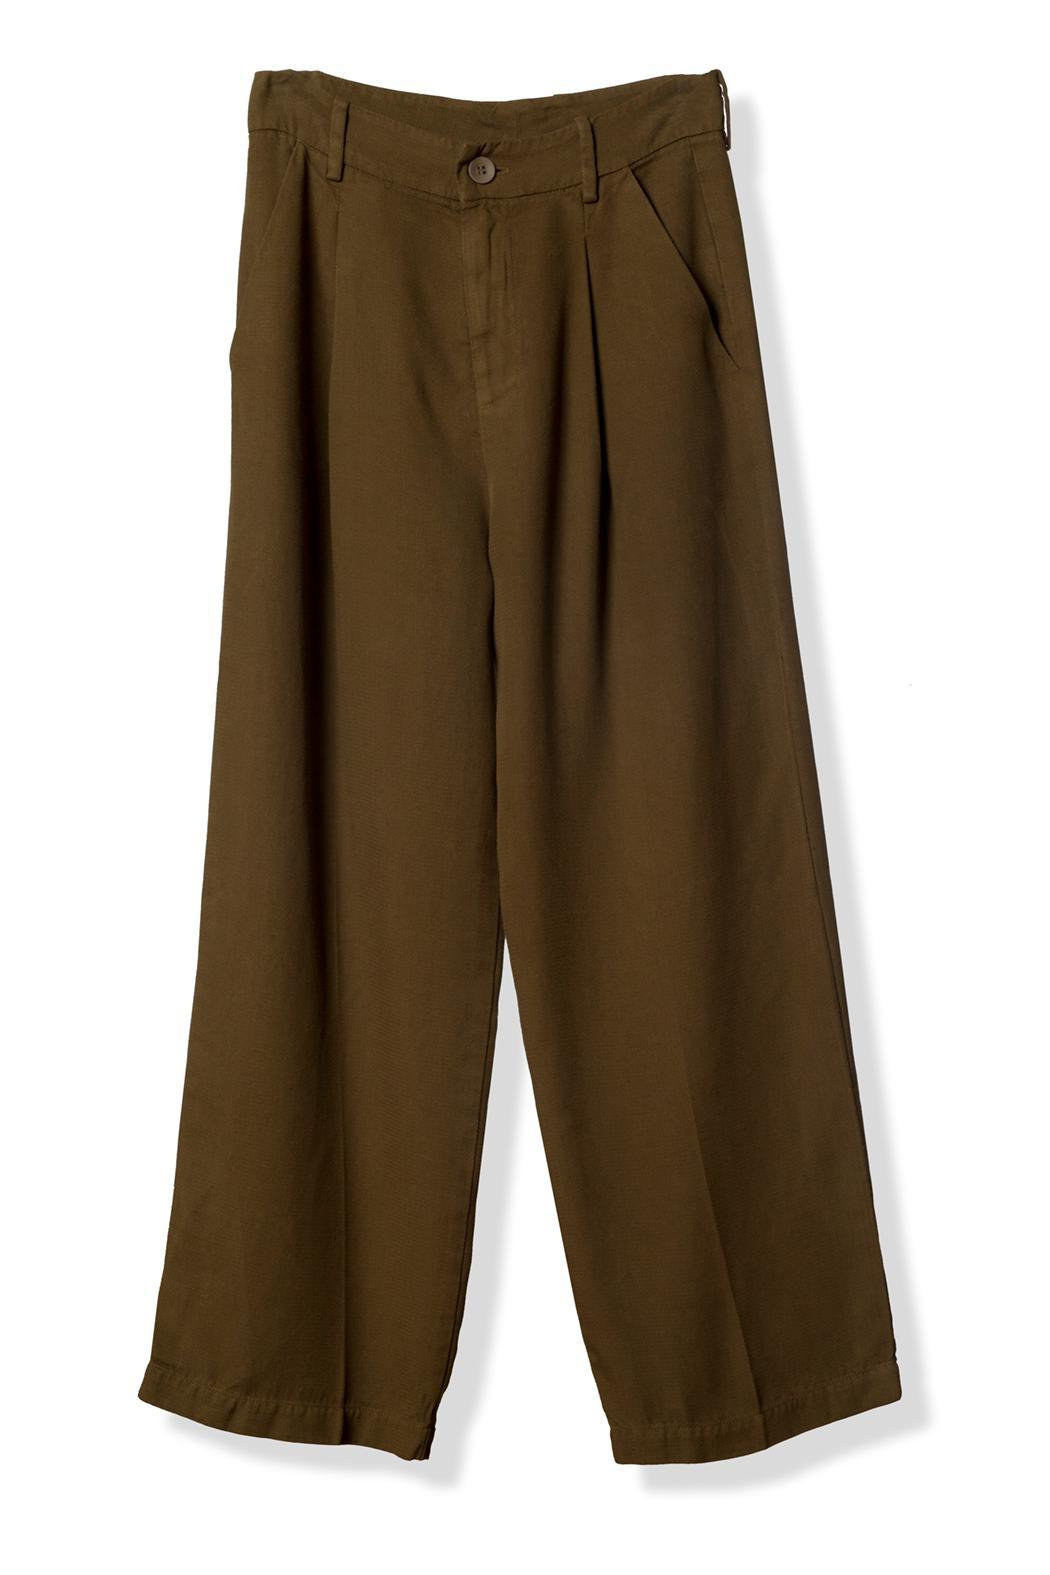 LACAUSA High-Waisted Cropped Trouser - Main Image